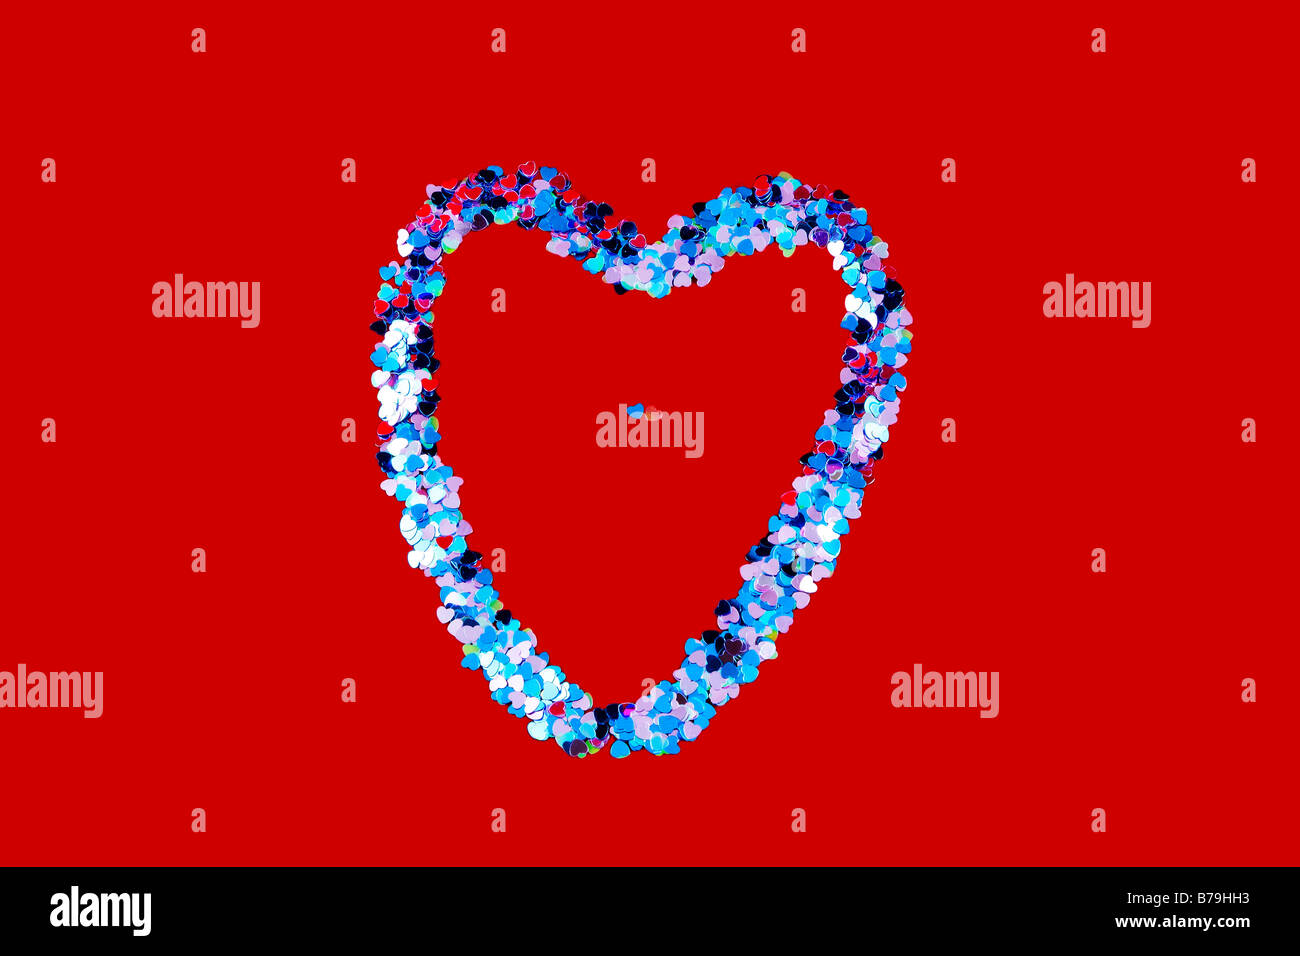 Heart shape composed of heart confetti on a red background with two small hearts in the middle - Stock Image